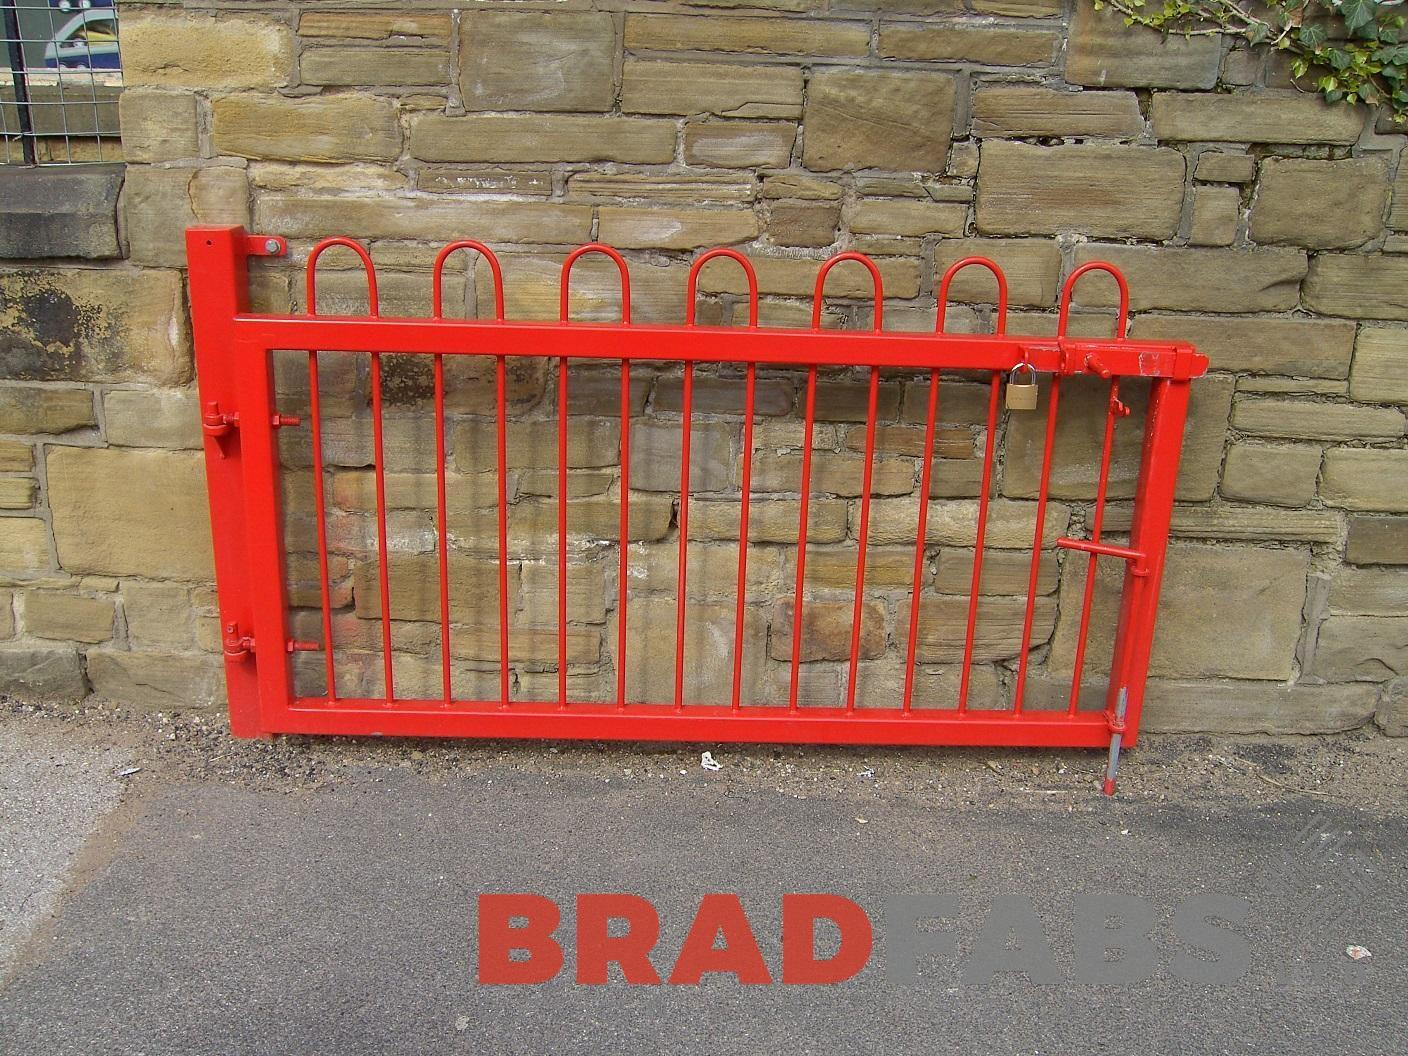 Bespoke gates, mild steel, galvanised and powder coated red by bradfabs ltd